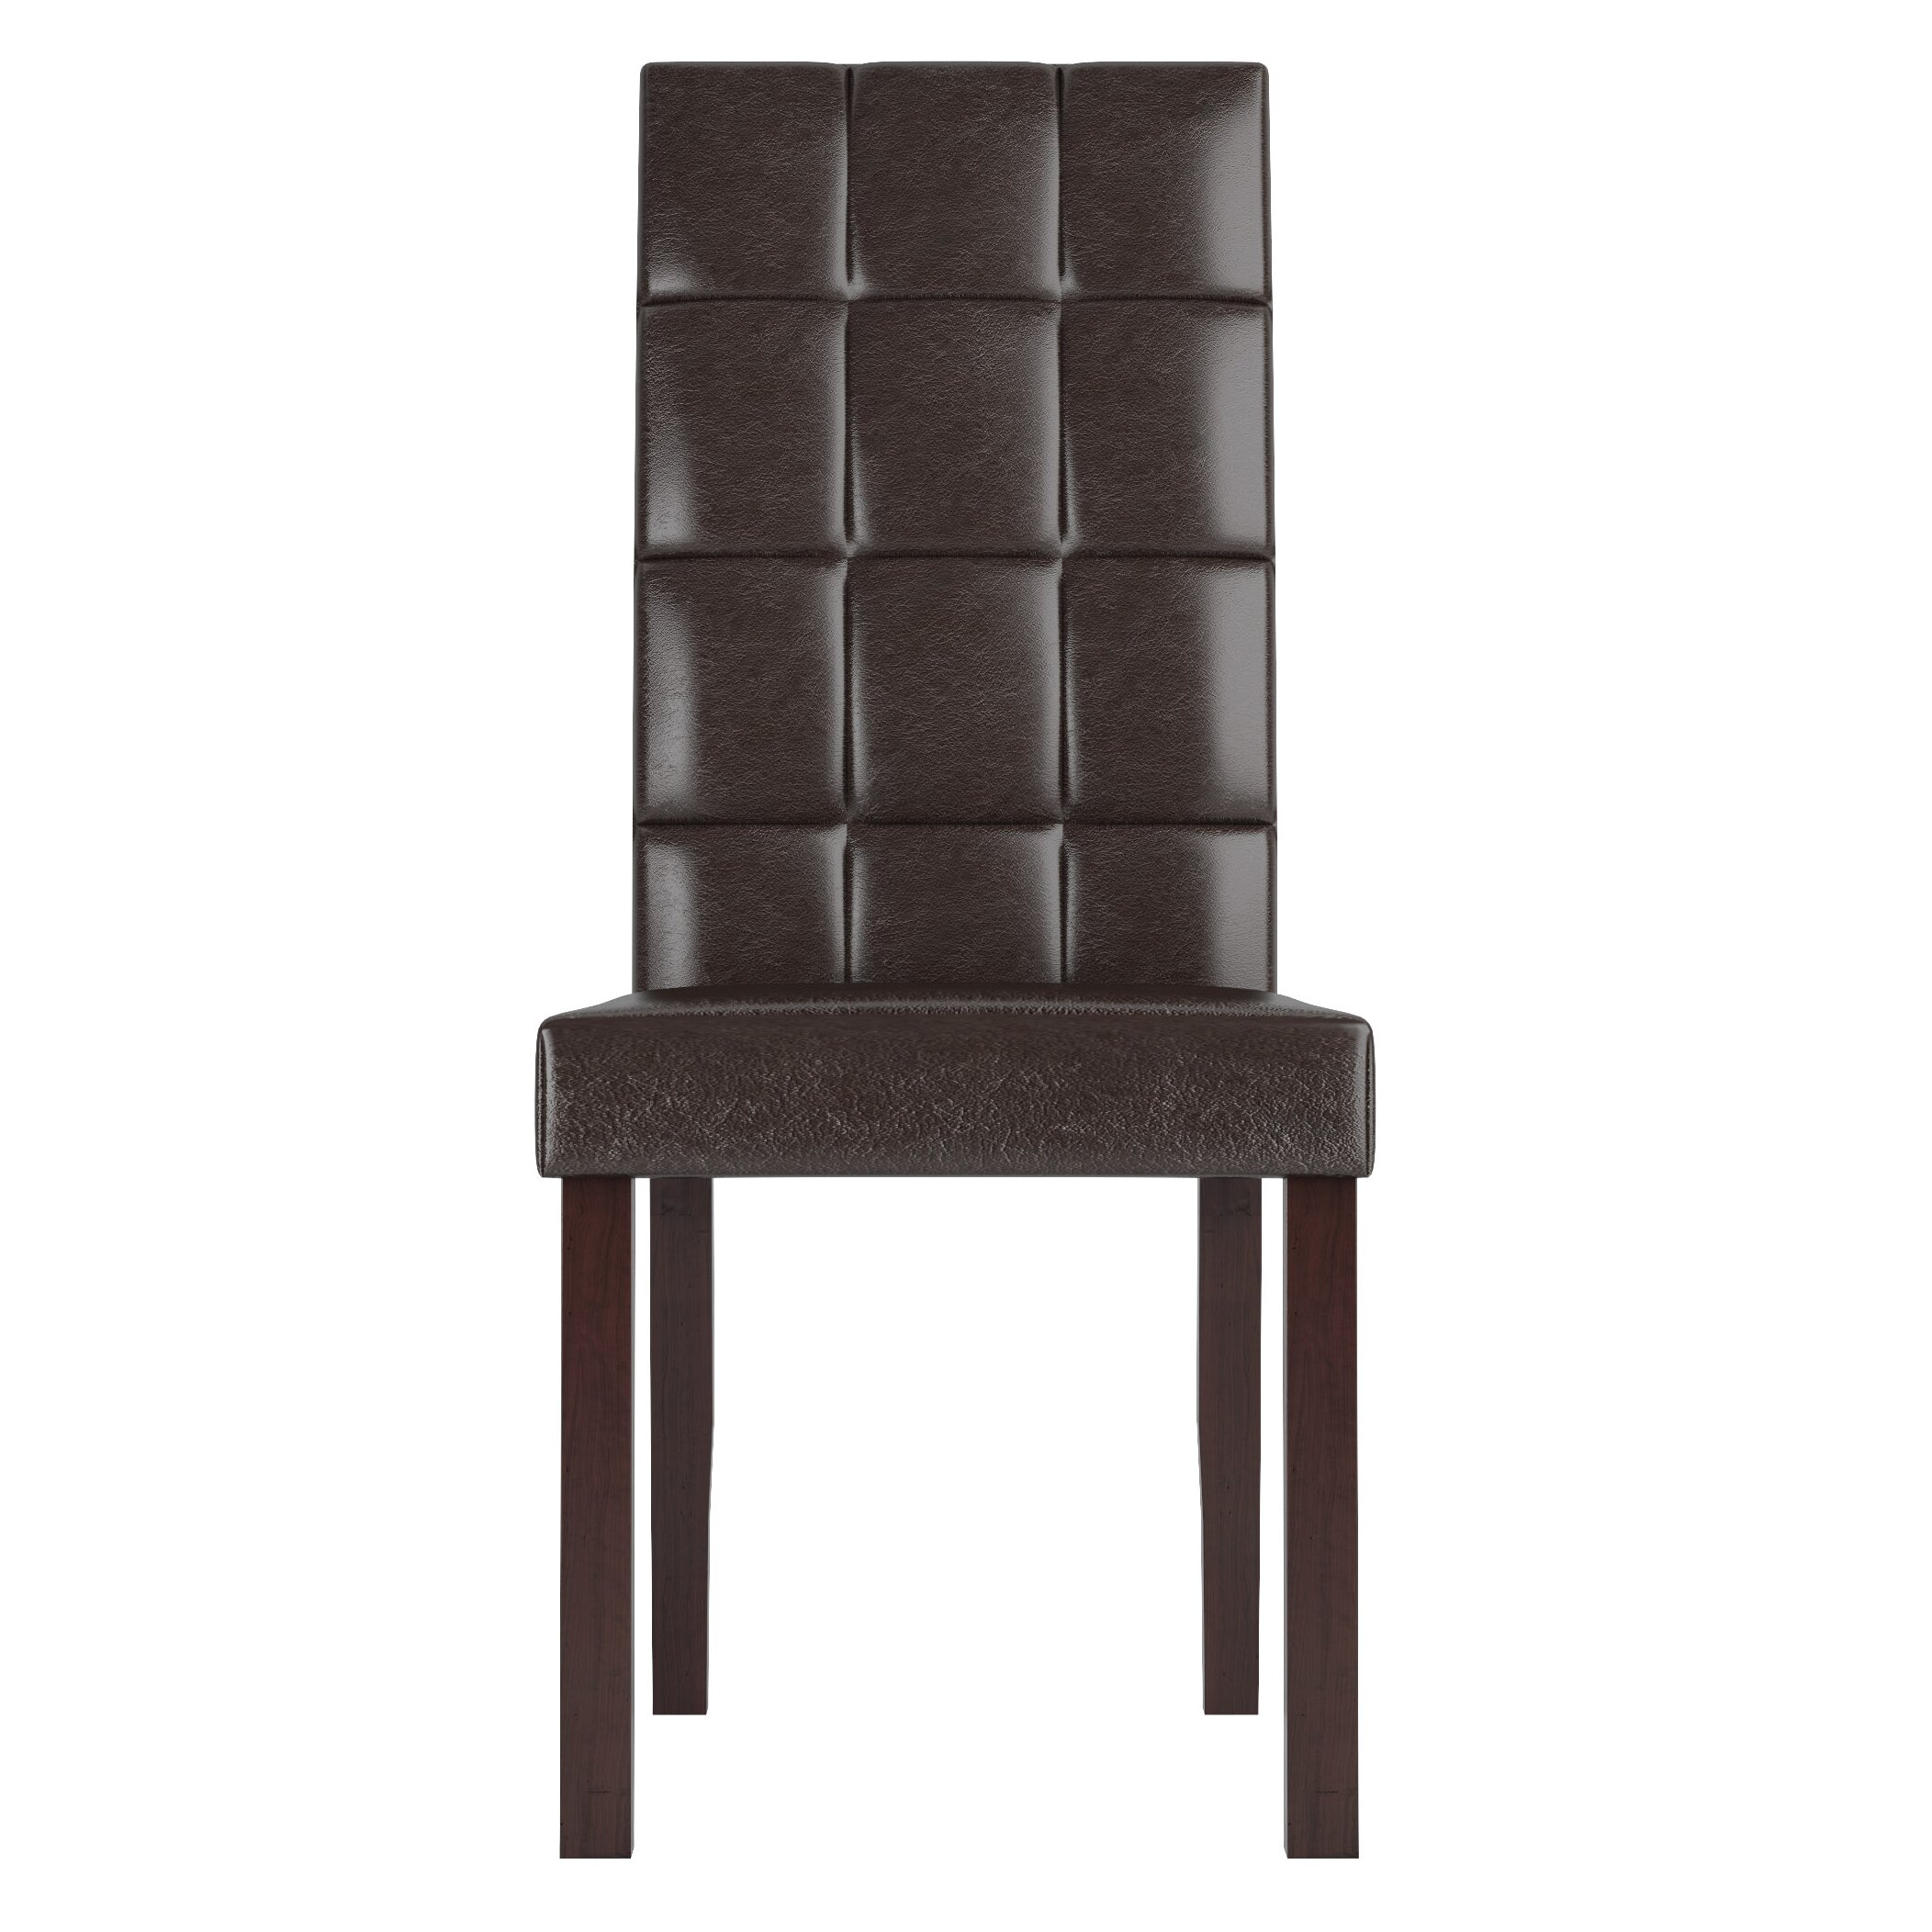 Dcor design atwood parsons chair wayfair for What is a parsons chair style